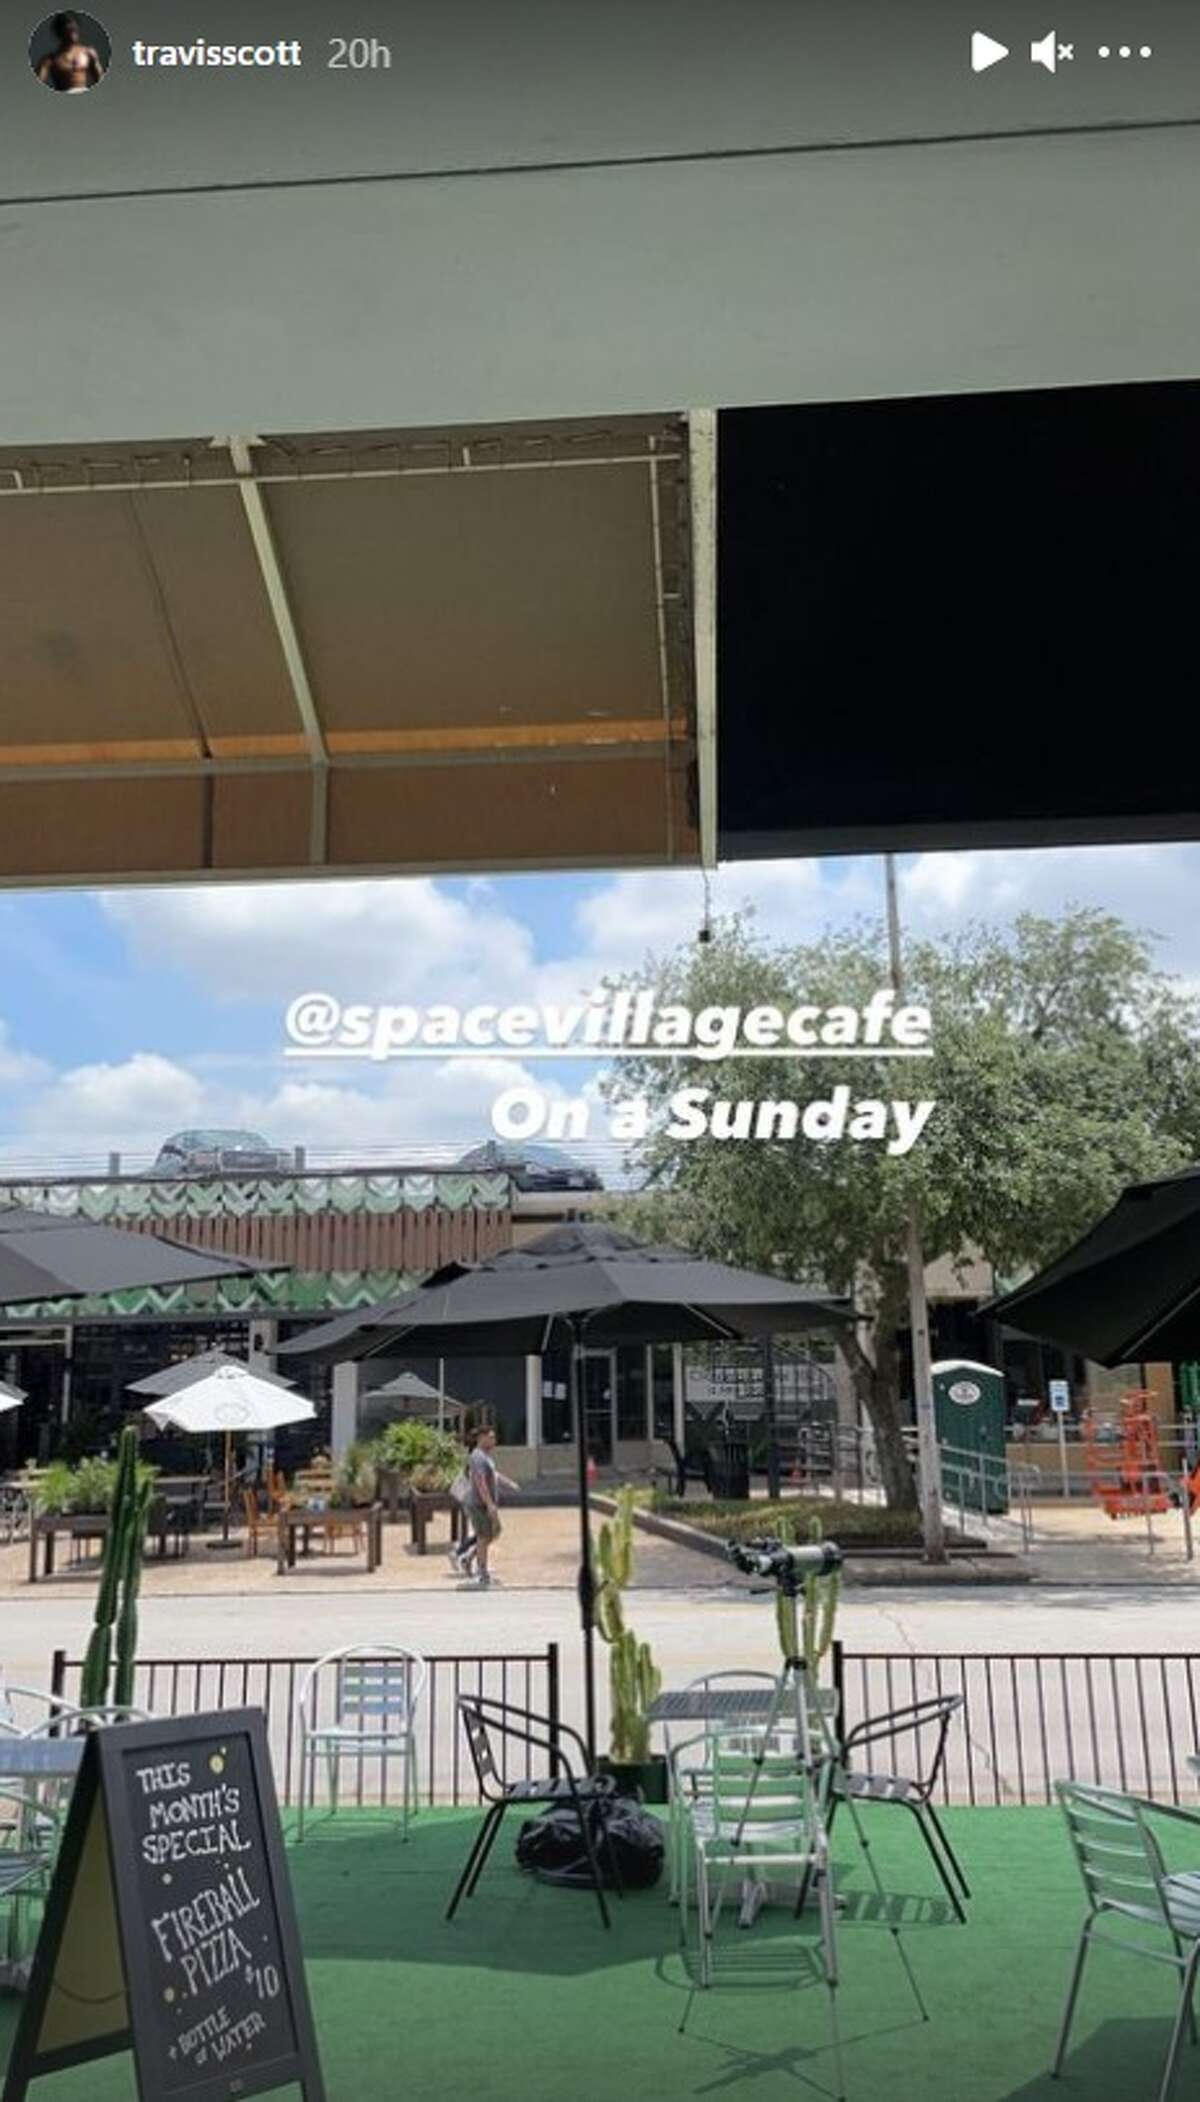 Kylie Jenner and Travis Scott have been documenting trips to Houston spots via Instagram Stories.